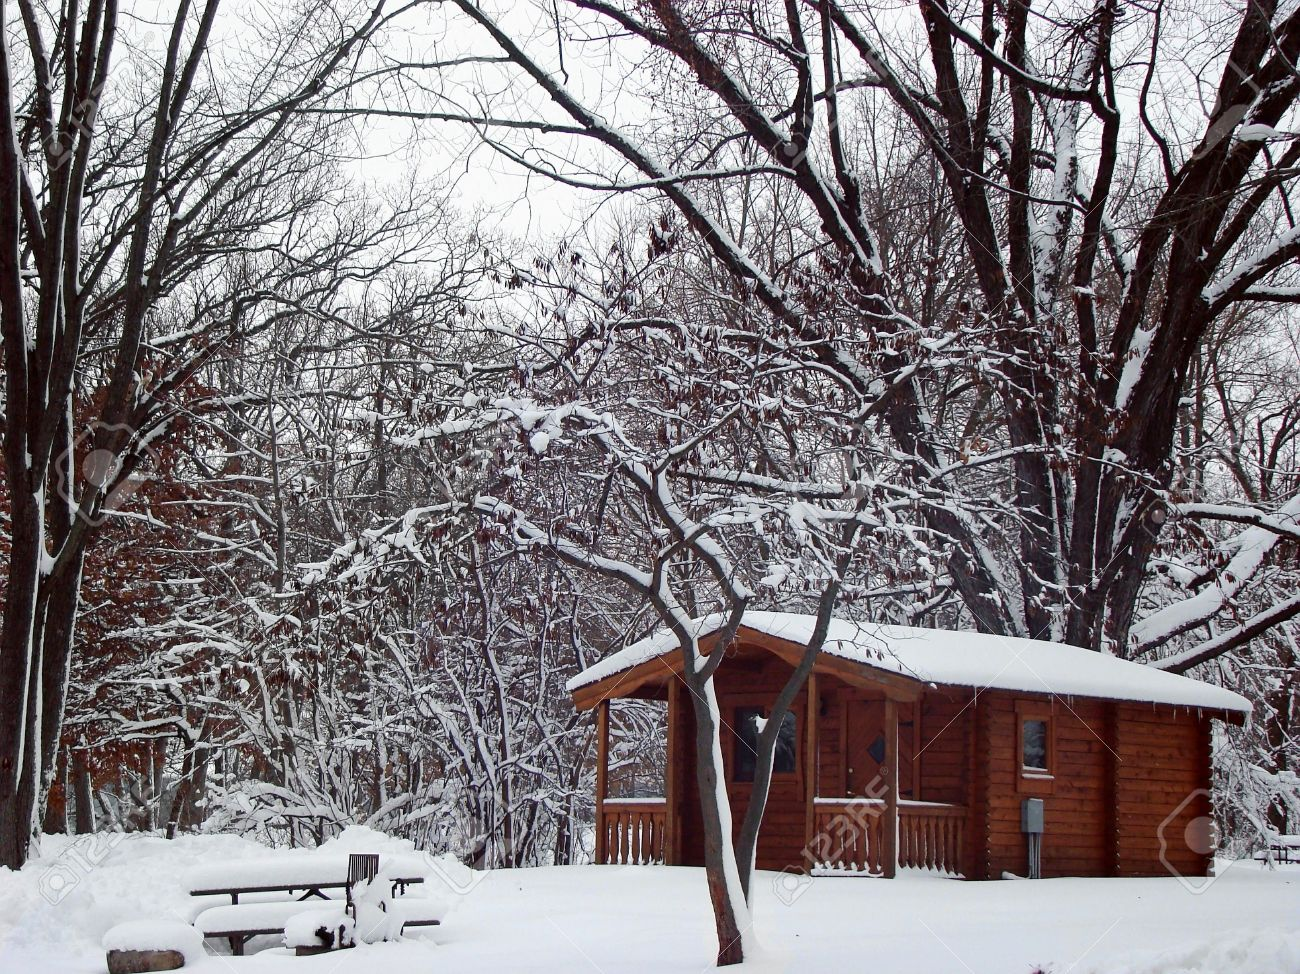 Stock Photography Of A Log Cabin In The Woods Snow Scenery Stock